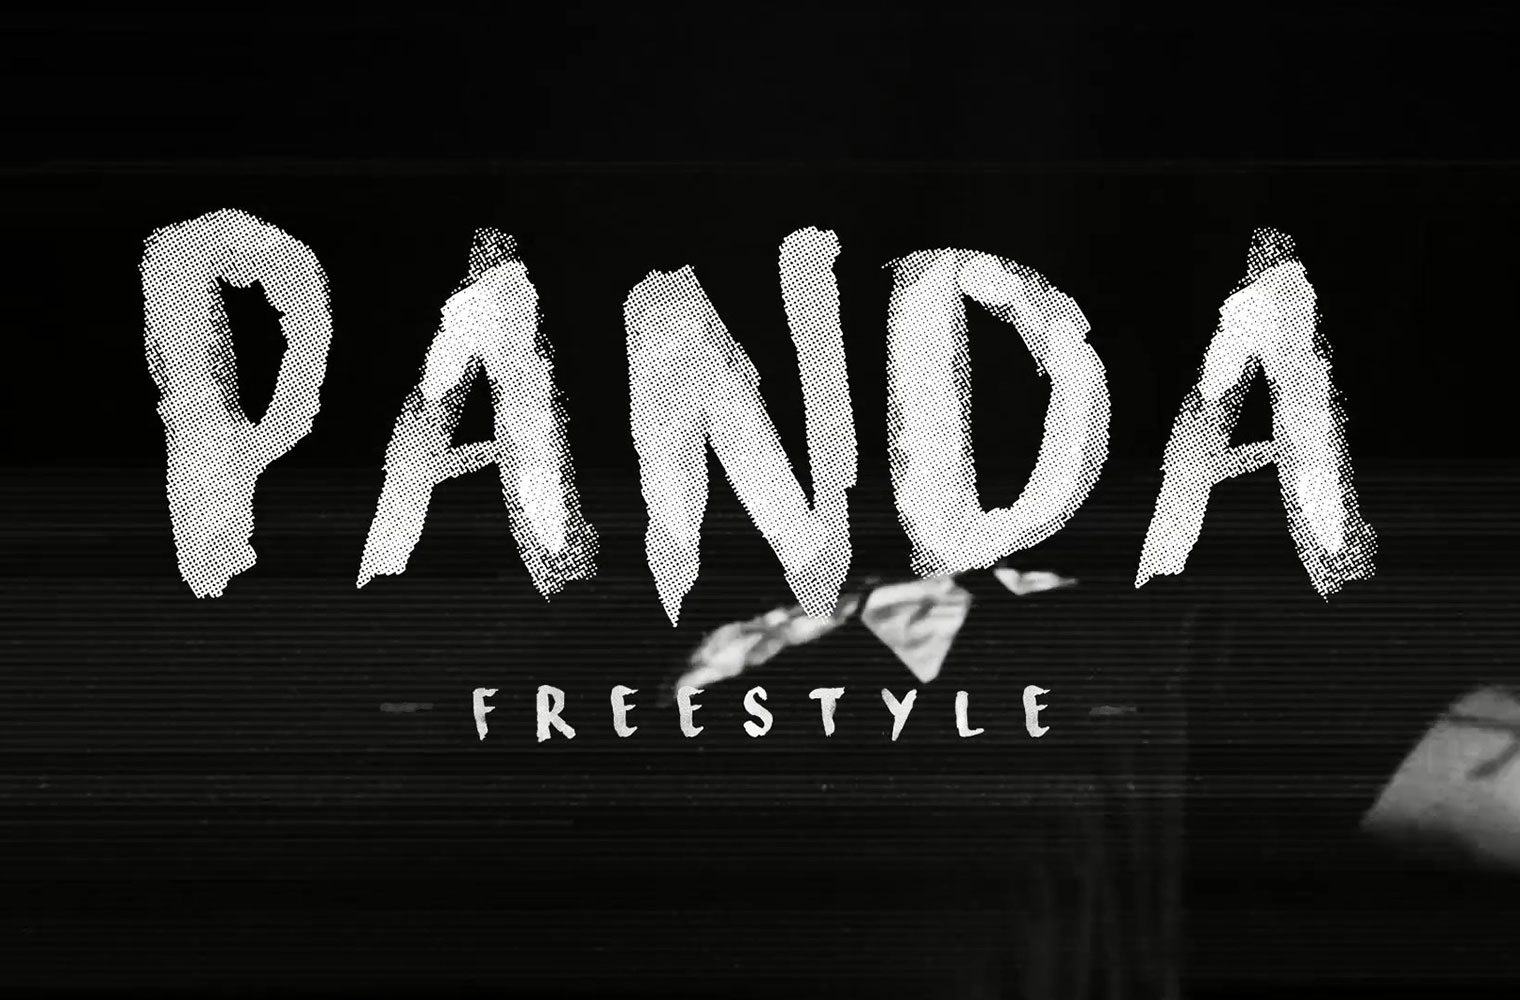 KIDDYE BONZ - PANDA (Freestyle)